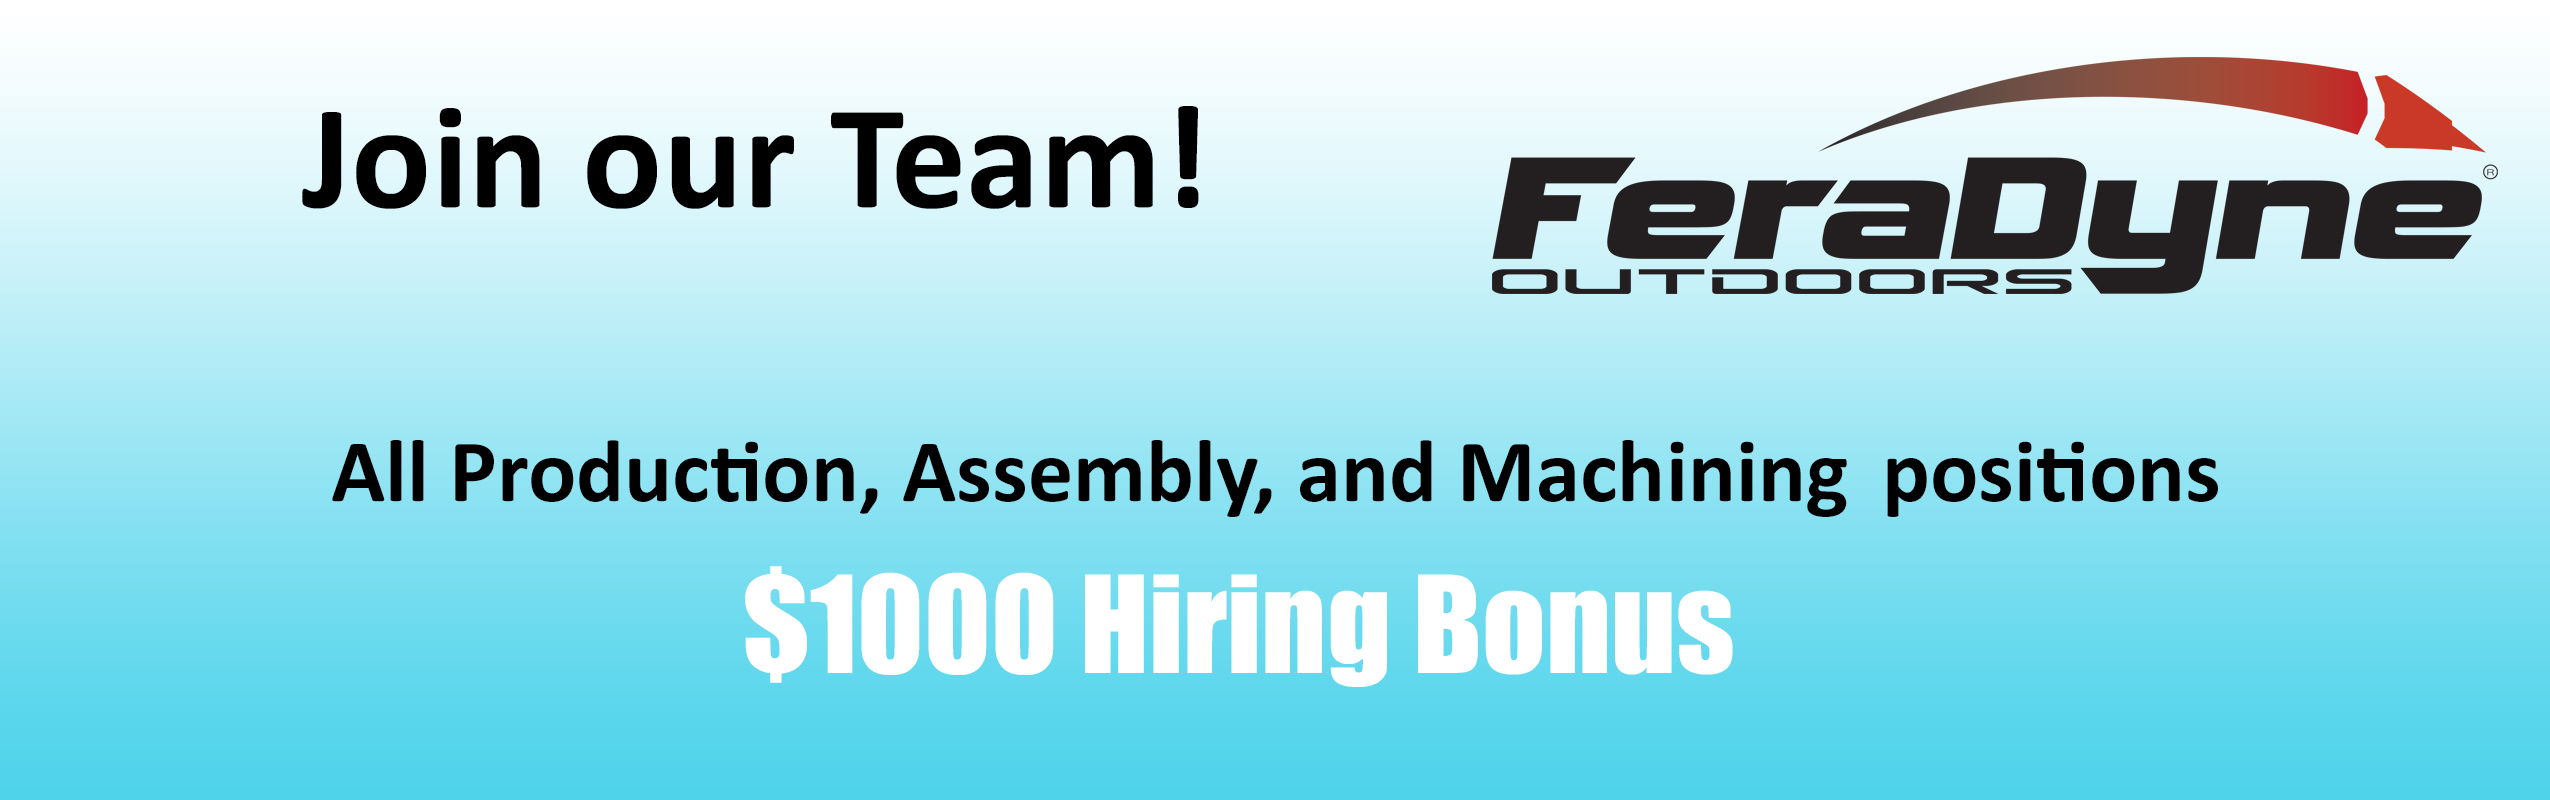 new hire banner